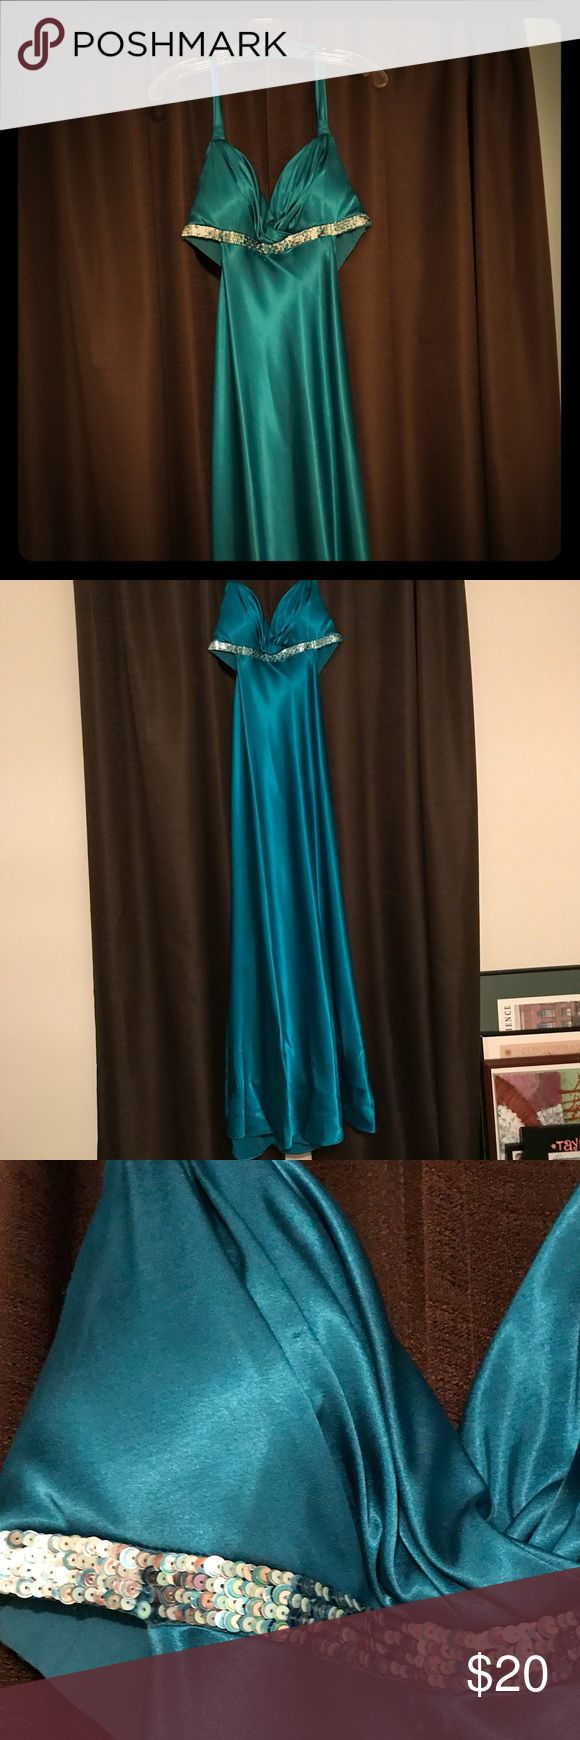 David's Bridal Dress David's Bridal Dress Size 10  Few signs of wear (as pictured) David's Bridal Dresses Prom